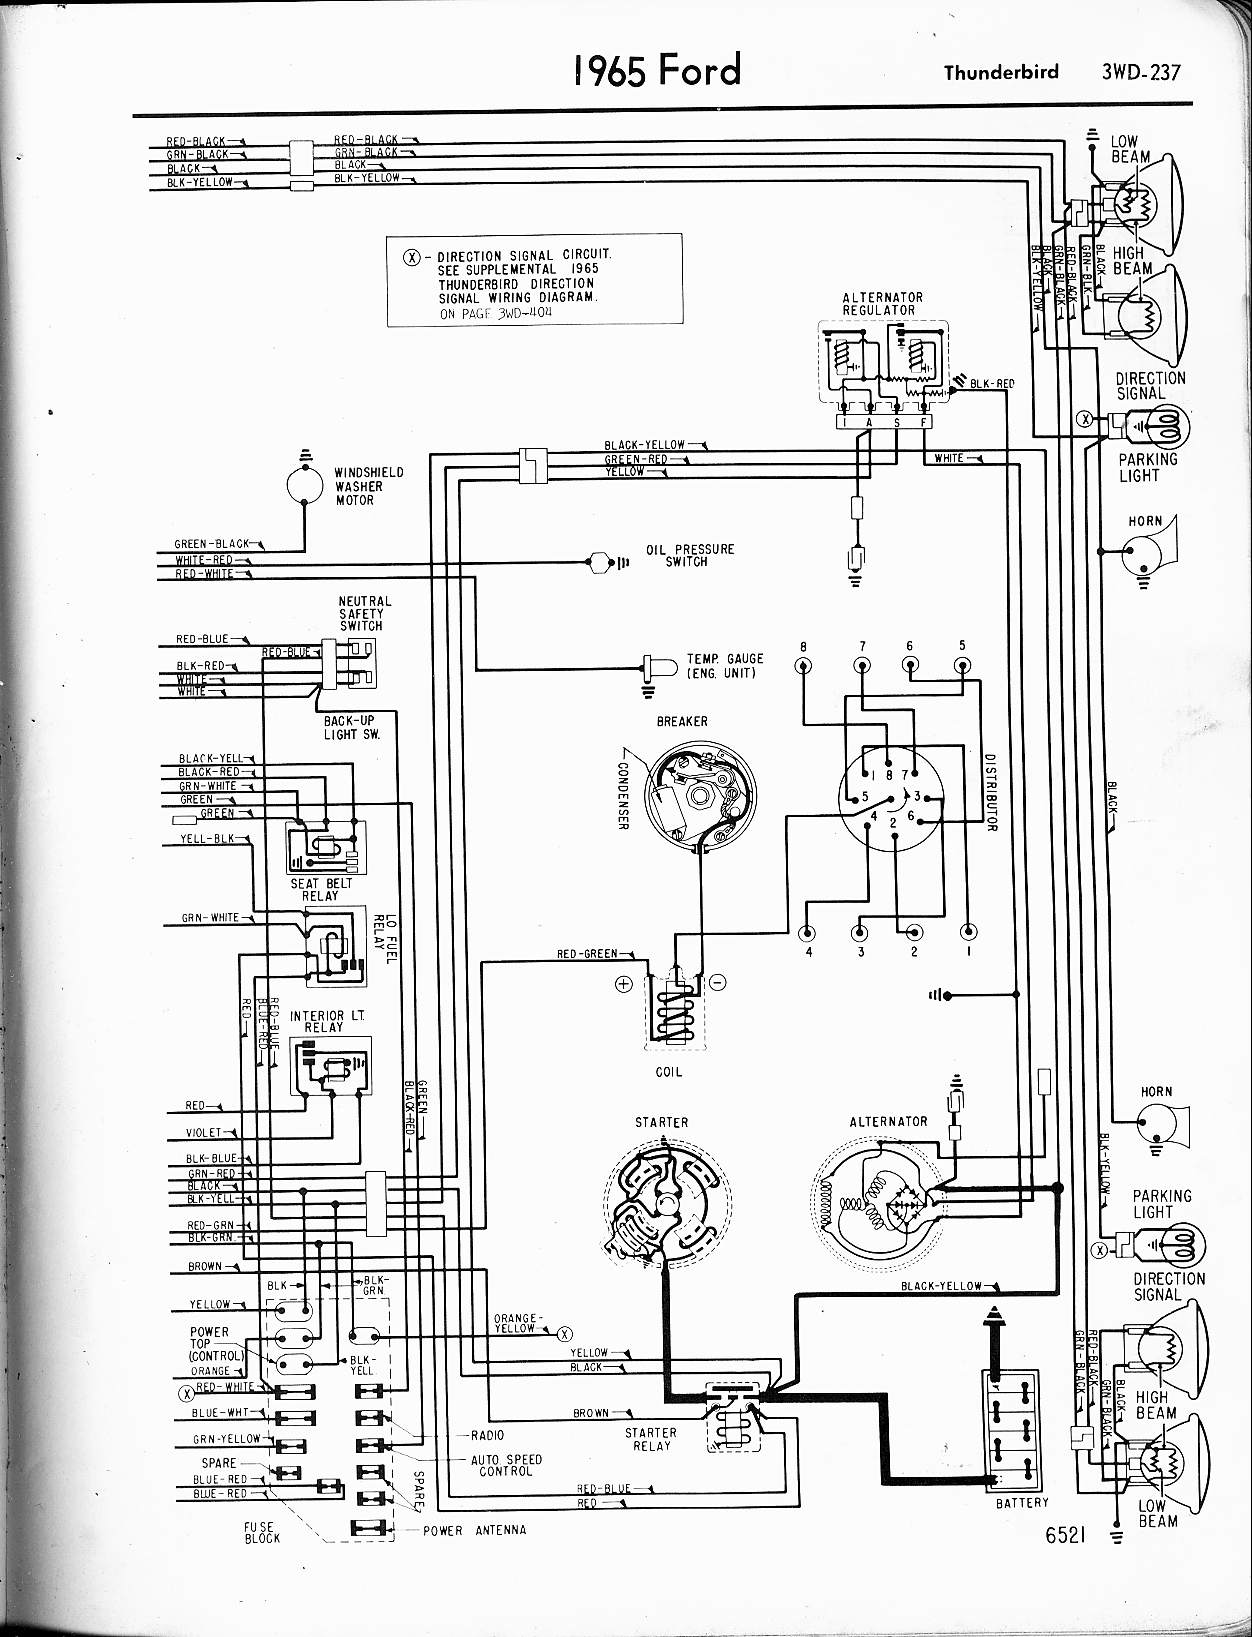 MWire5765 237 57 65 ford wiring diagrams 1965 thunderbird alternator wiring diagram at soozxer.org